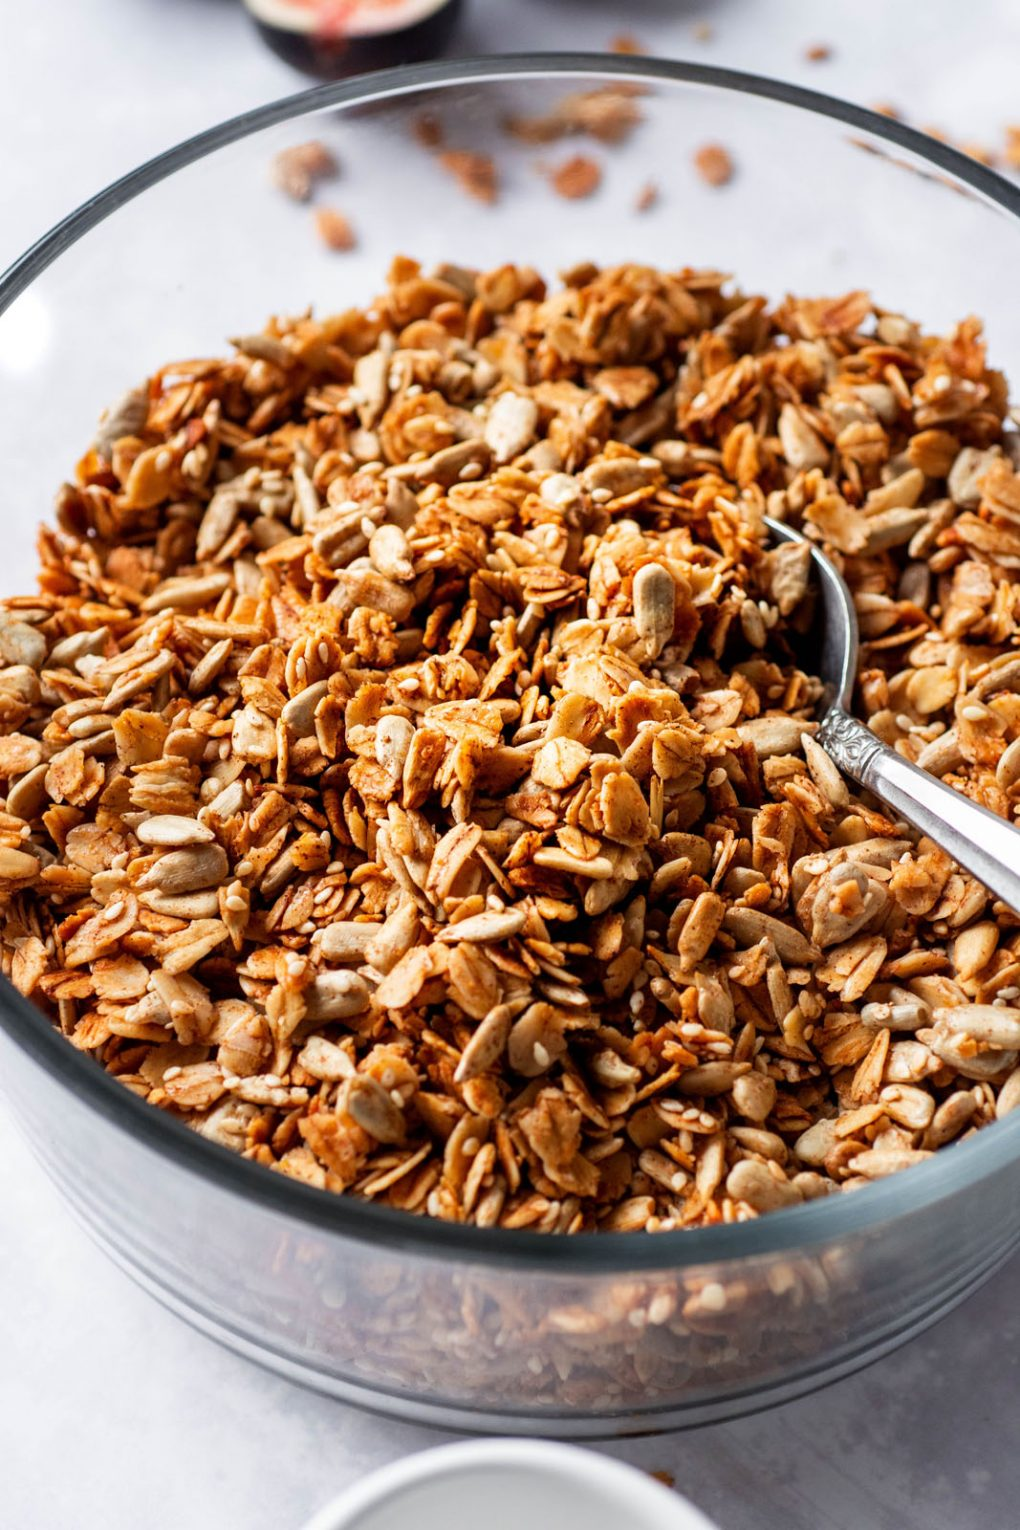 Side angle shot of a glass pyrex dish with toasty granola and a silver spoon digging in.